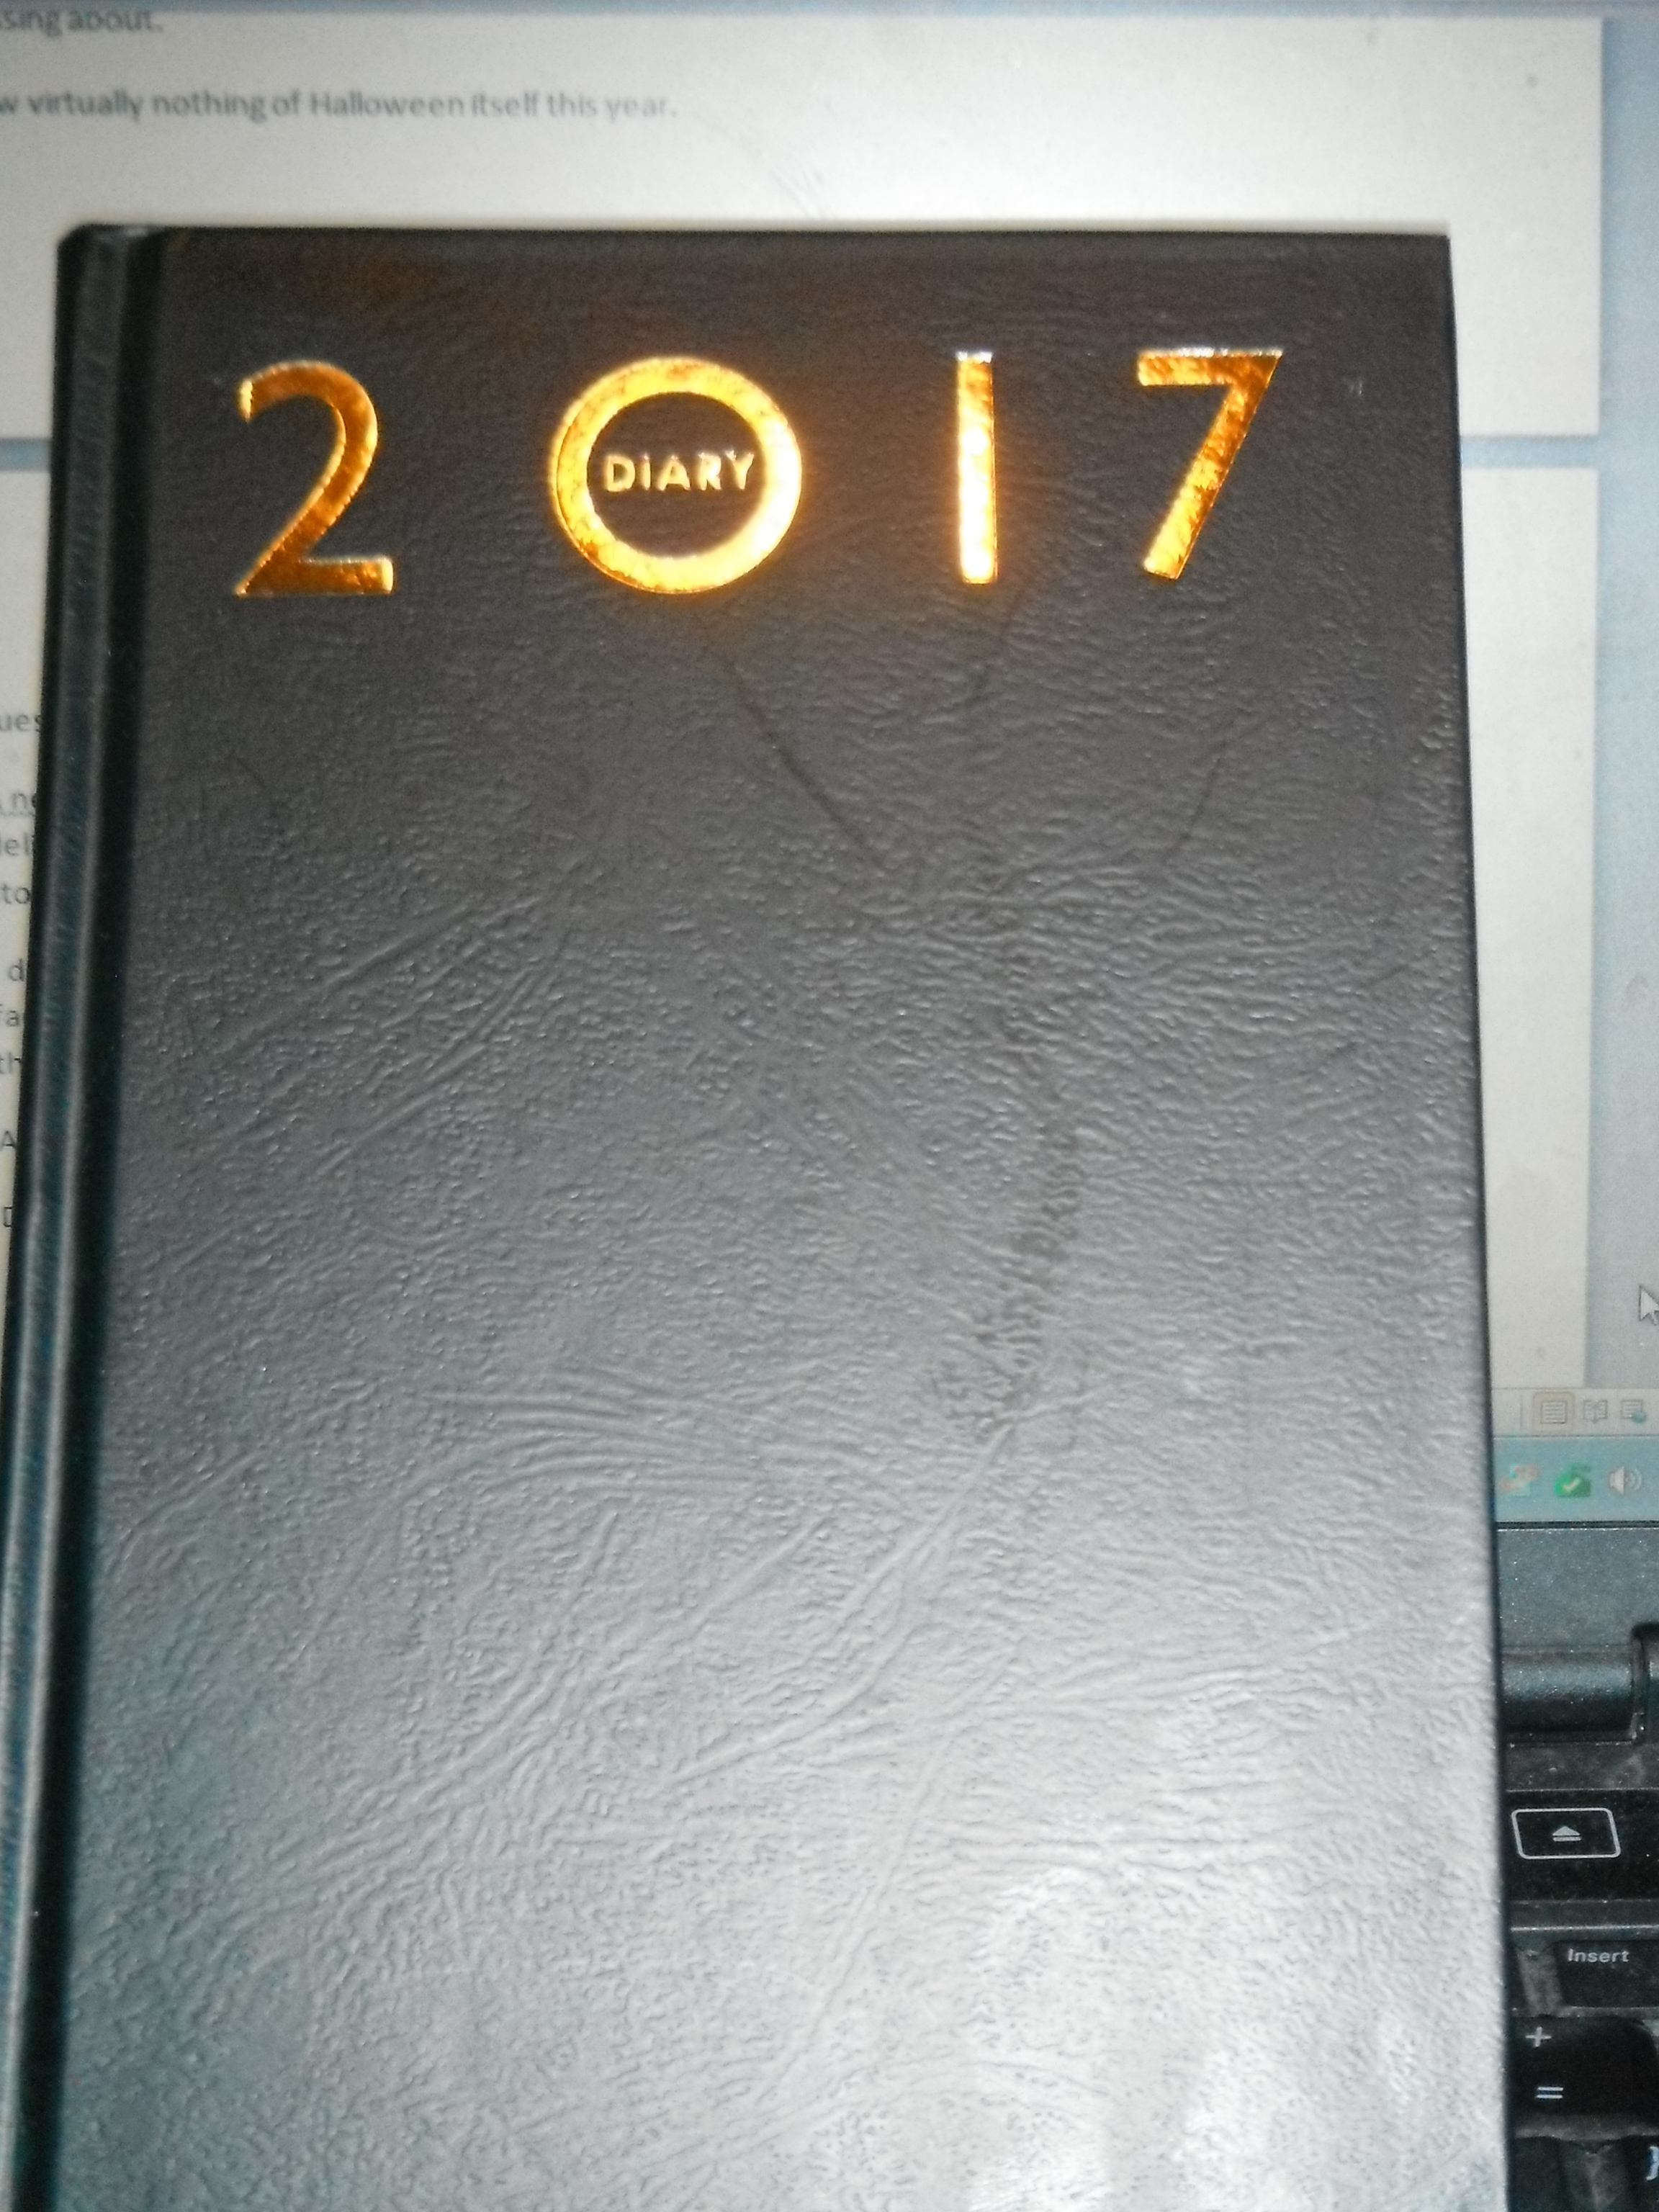 Photo taken by me – my 2017 diary